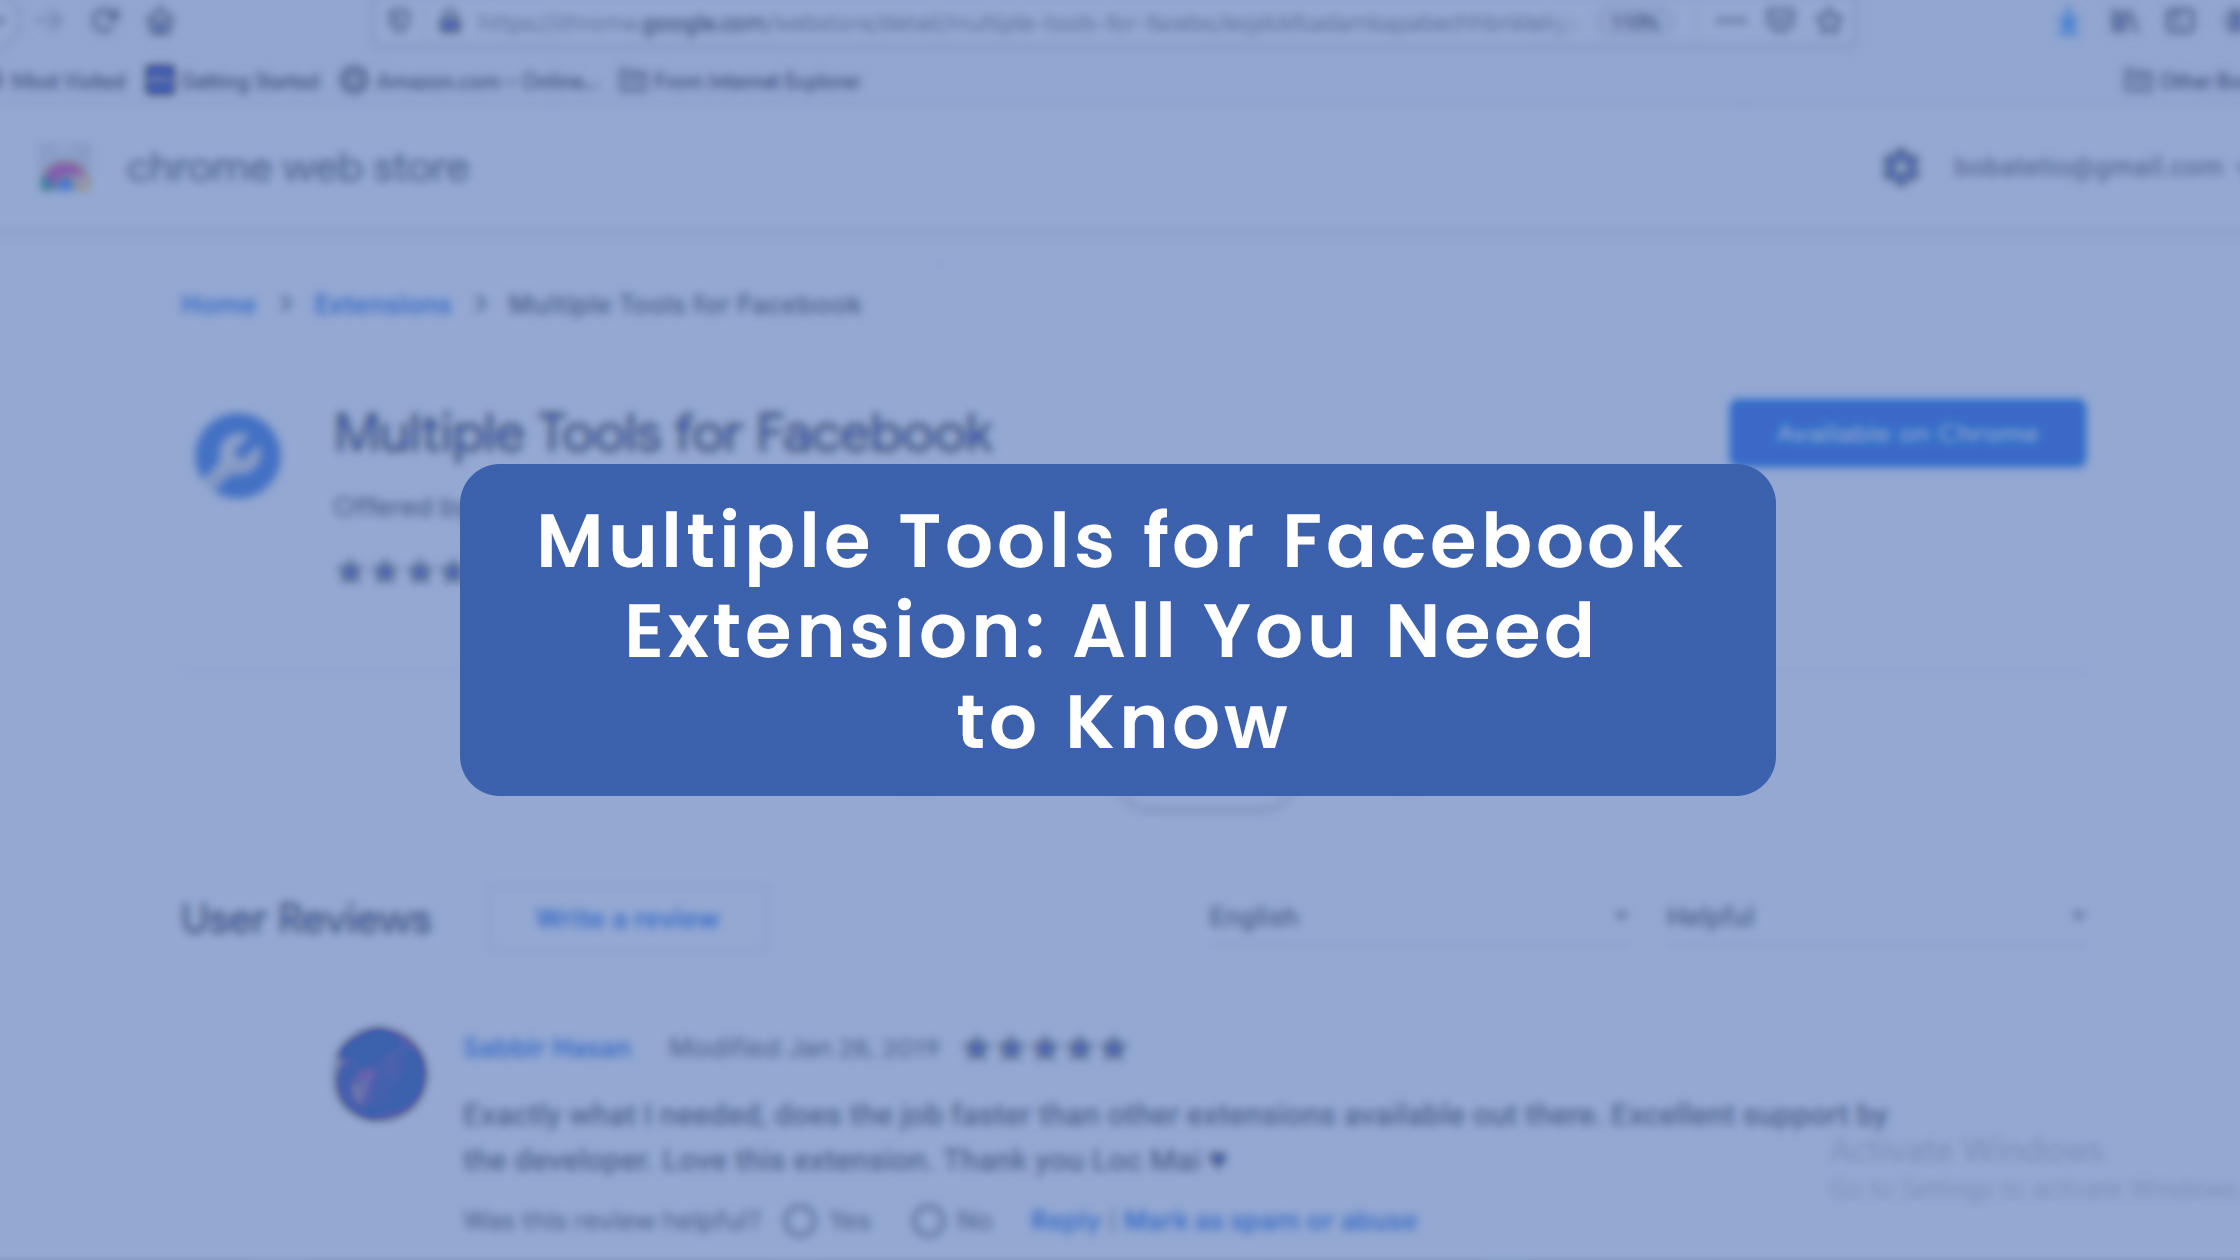 Multiple Tools for Facebook extension_All You Need to Know